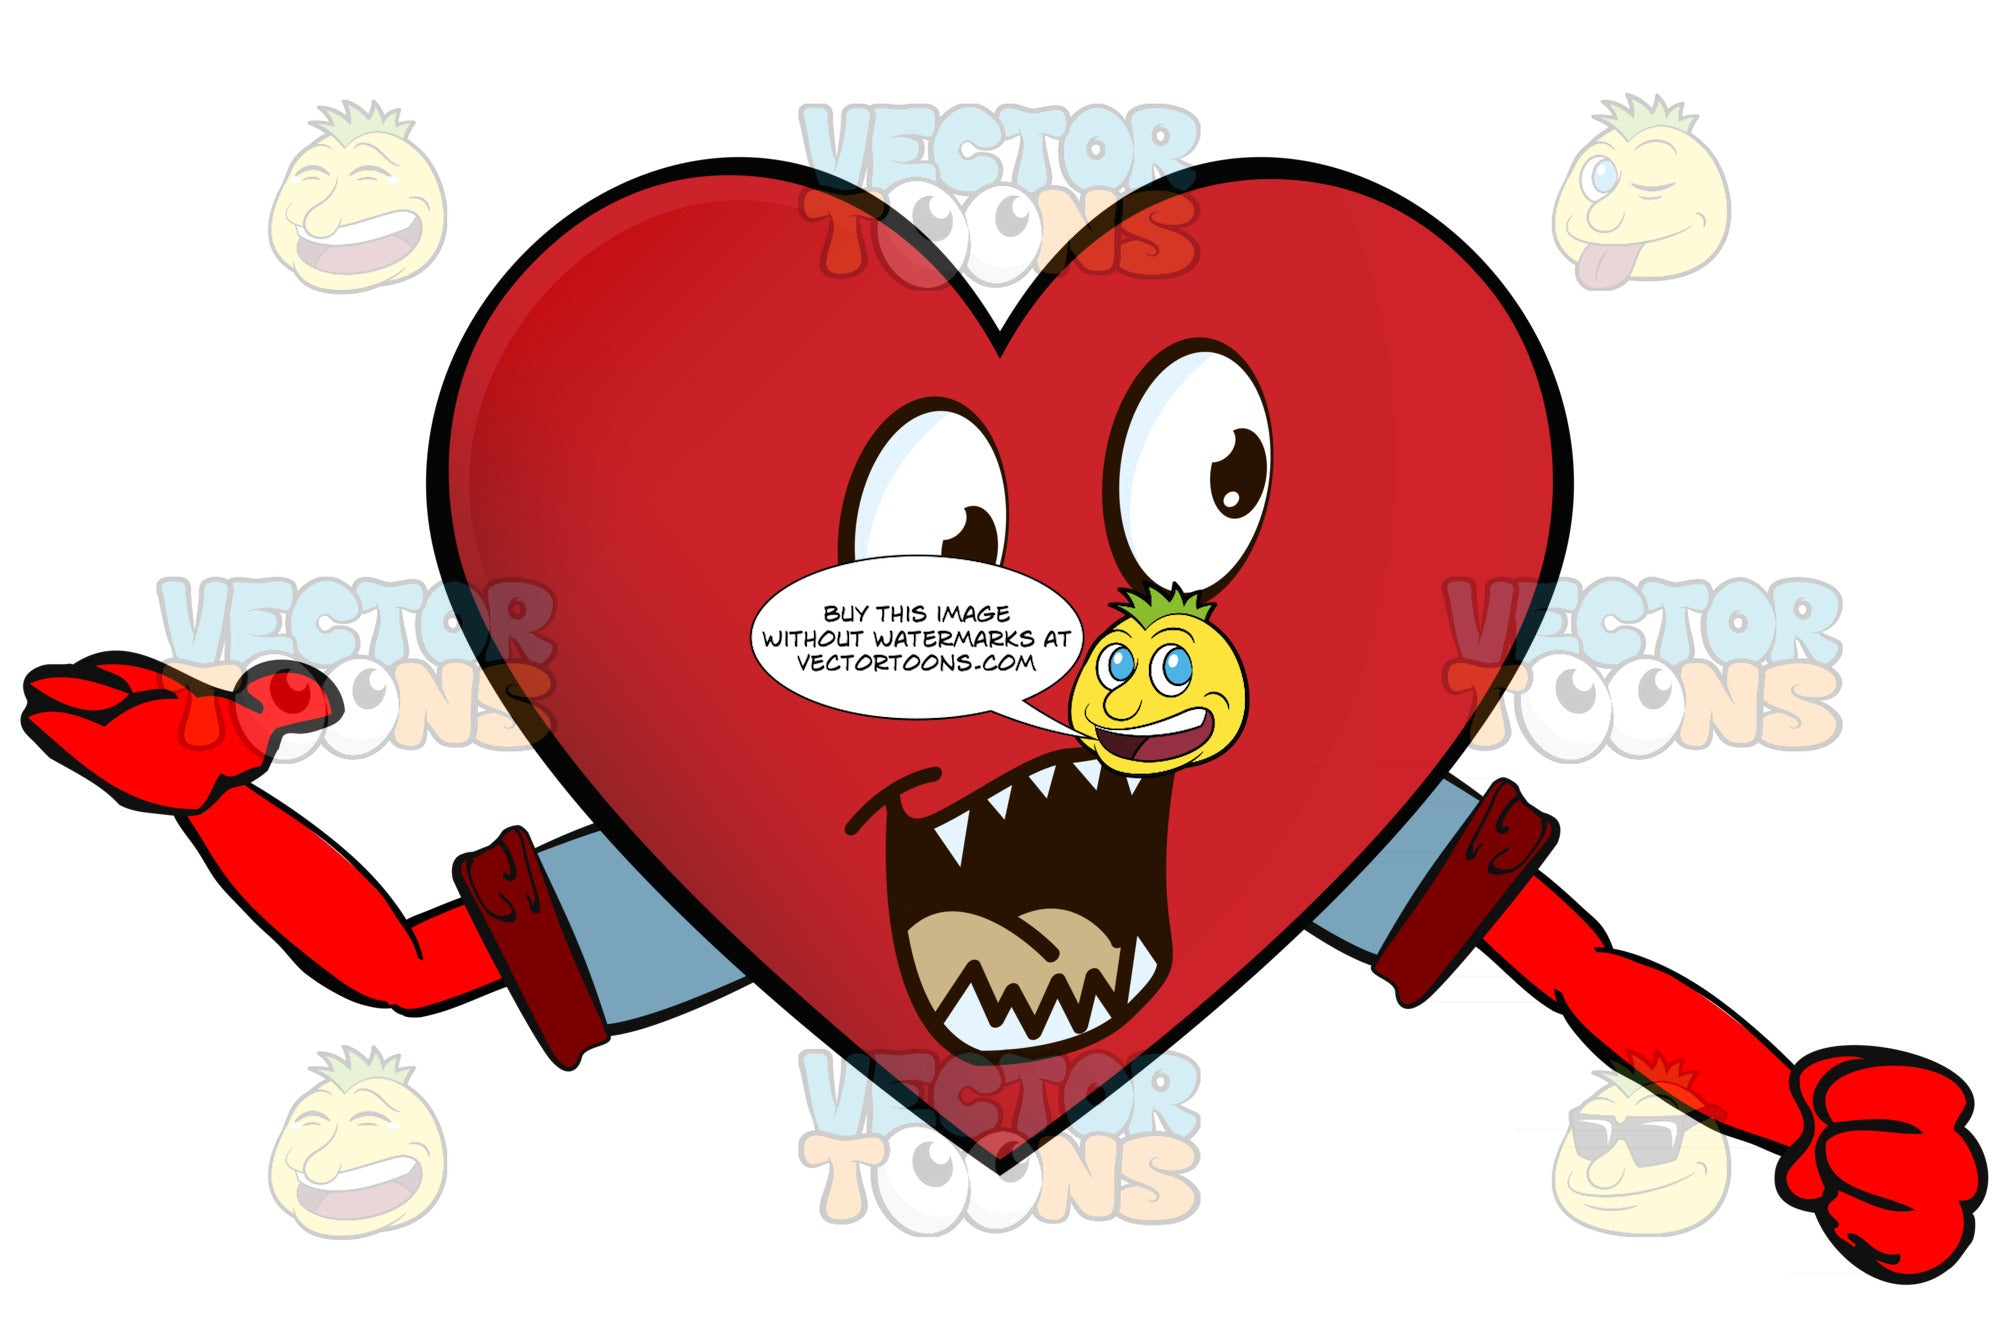 Pointed Teeth Heart Smiley With Open Mouth, One Arm Extended One Way, Other In Fist, Wearing Rolled Up Sleeves